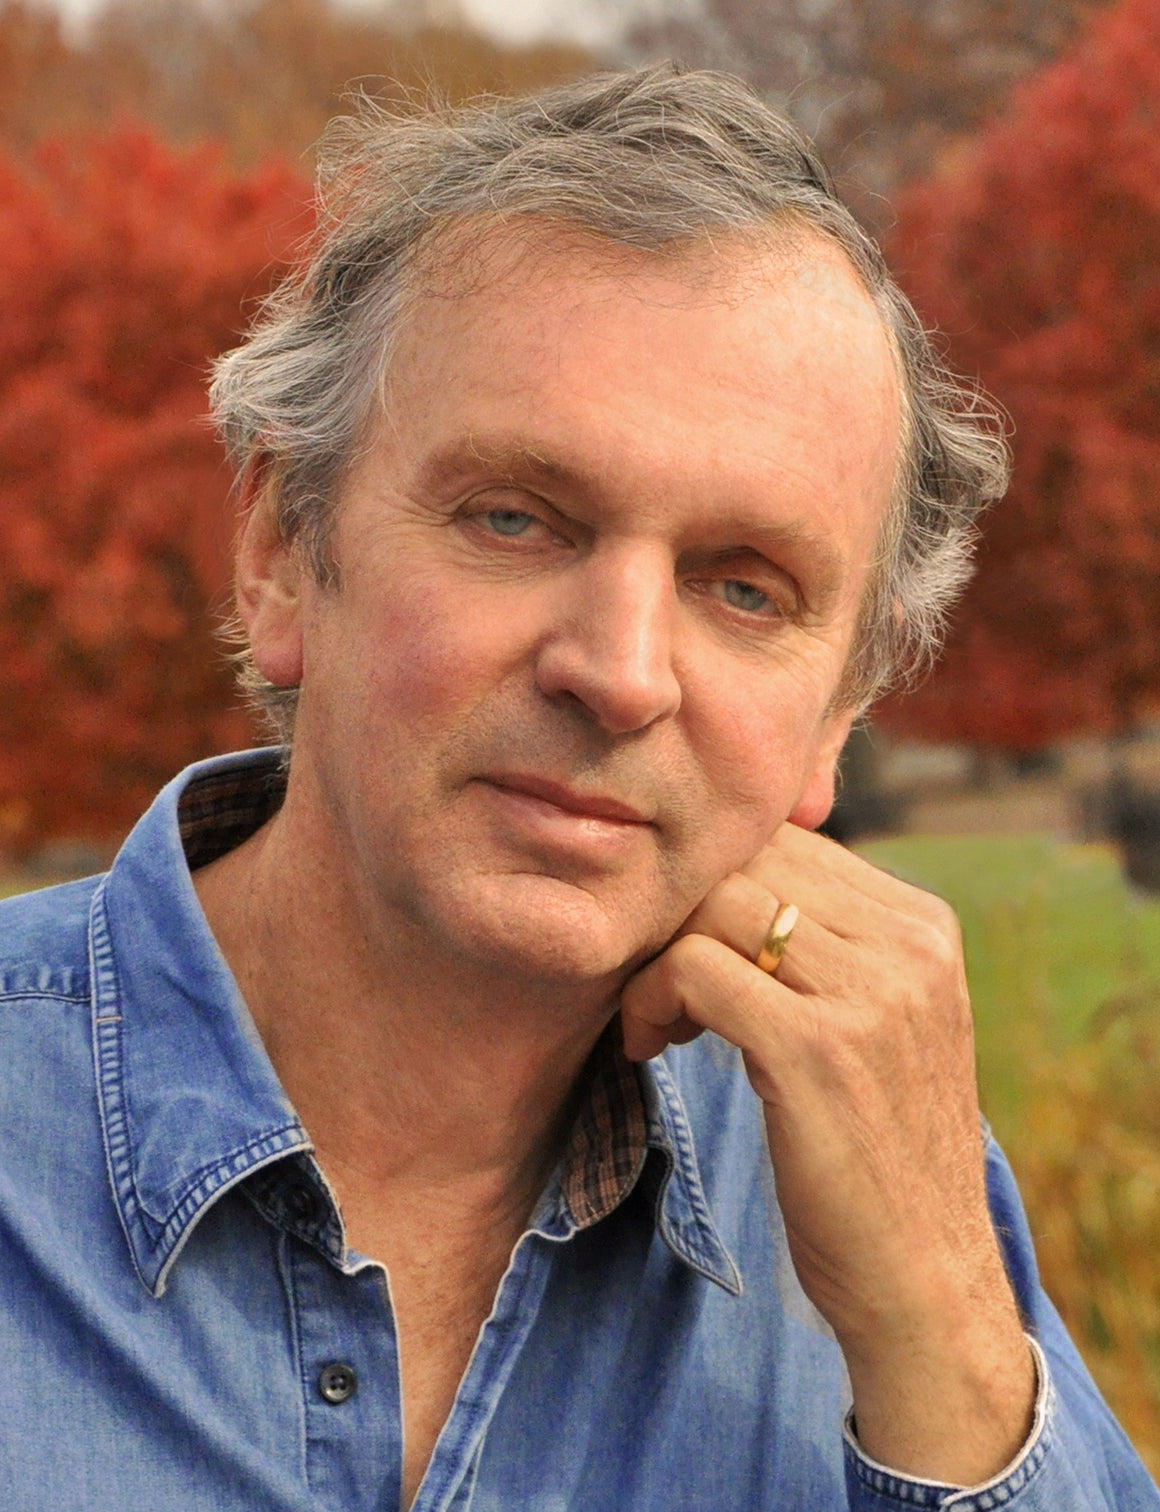 July 24, 2017 - Monday 7-9pm - Resonant Minds and Voices: An Evening with Rupert Sheldrake and Jill Purce at Fremont Abbey Arts Center